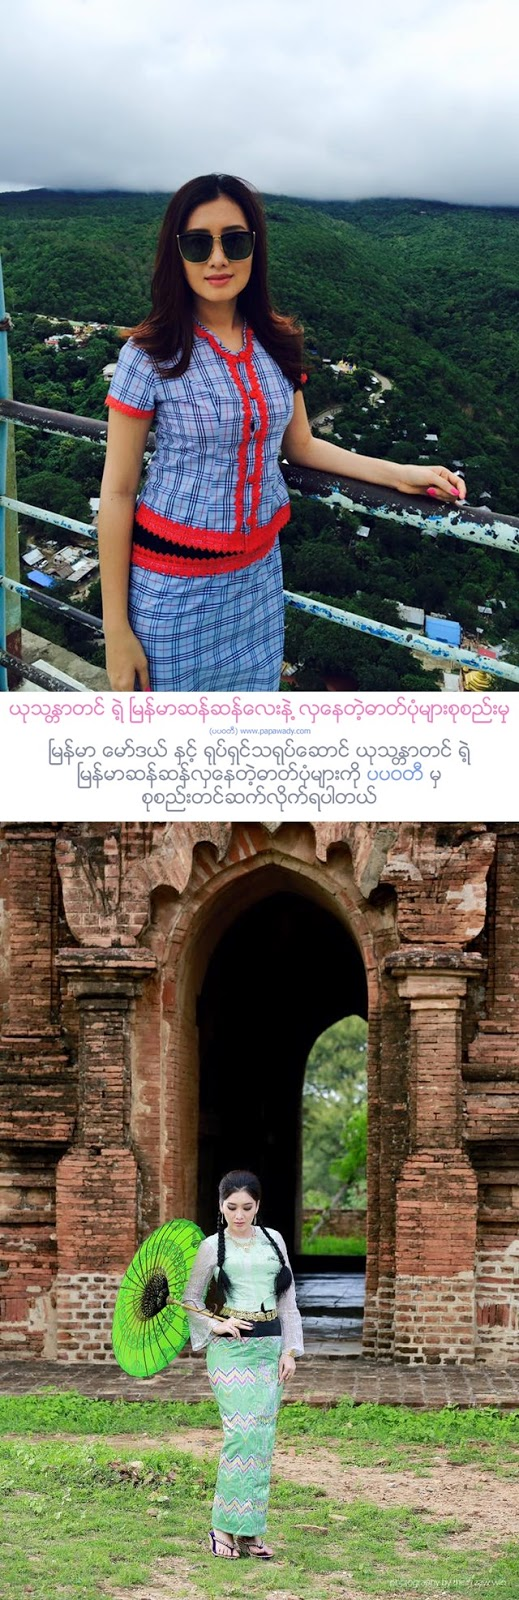 Yu Thandar Tin In Beautiful Myanmar Dress Collection : Mandalay , U Pain Bridge and Popular Places in Mandalay Division